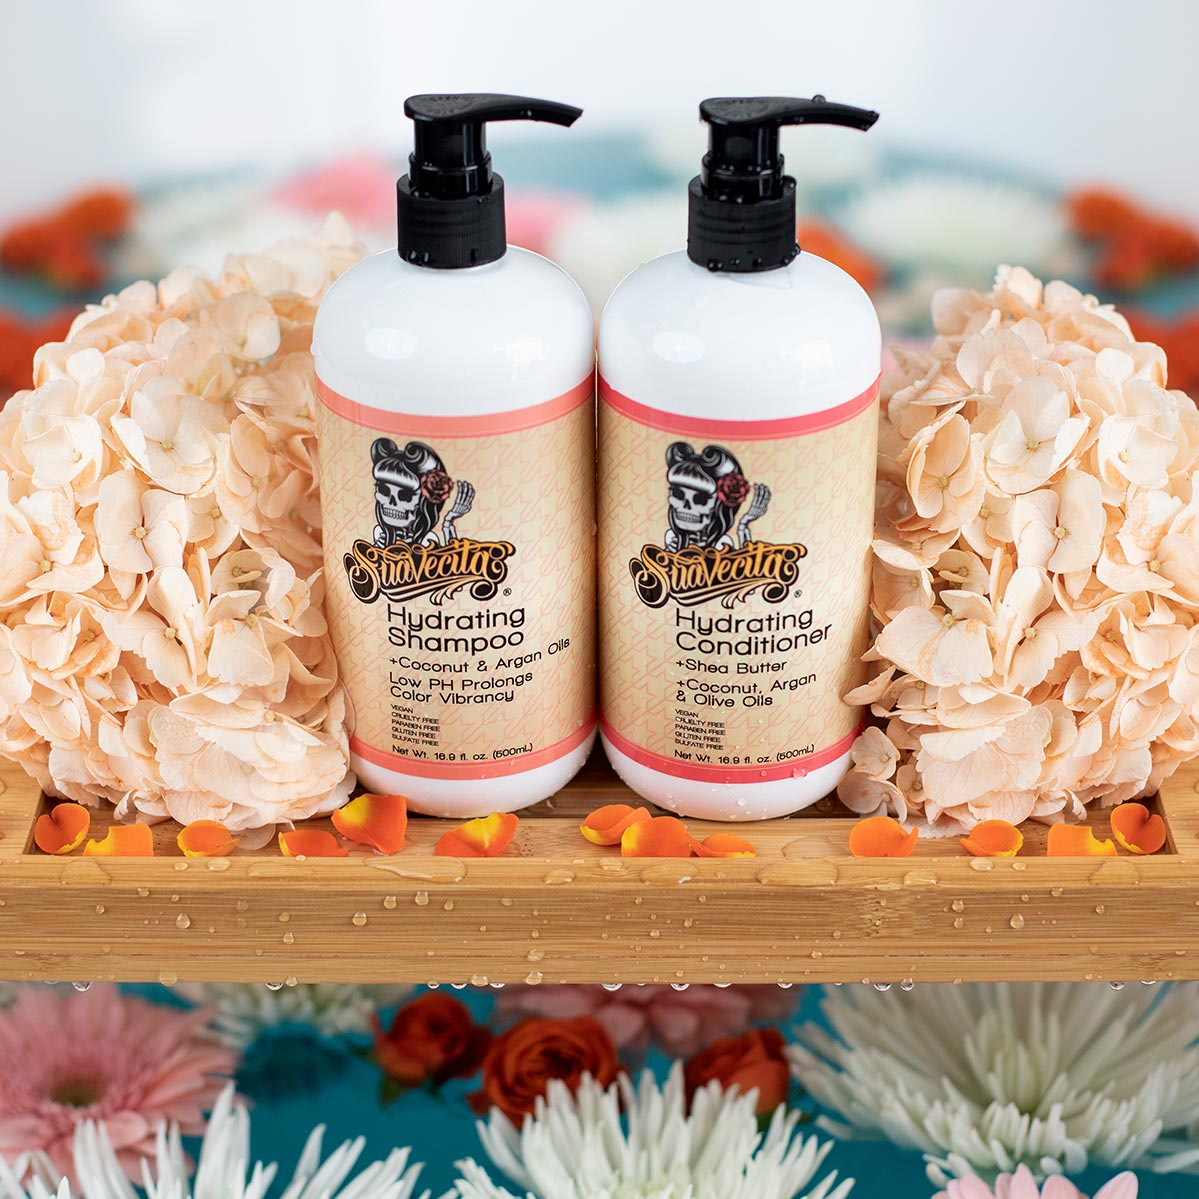 Suavecita Hydrating Shampoo and Conditioner on a bath tray surrounded with flowers